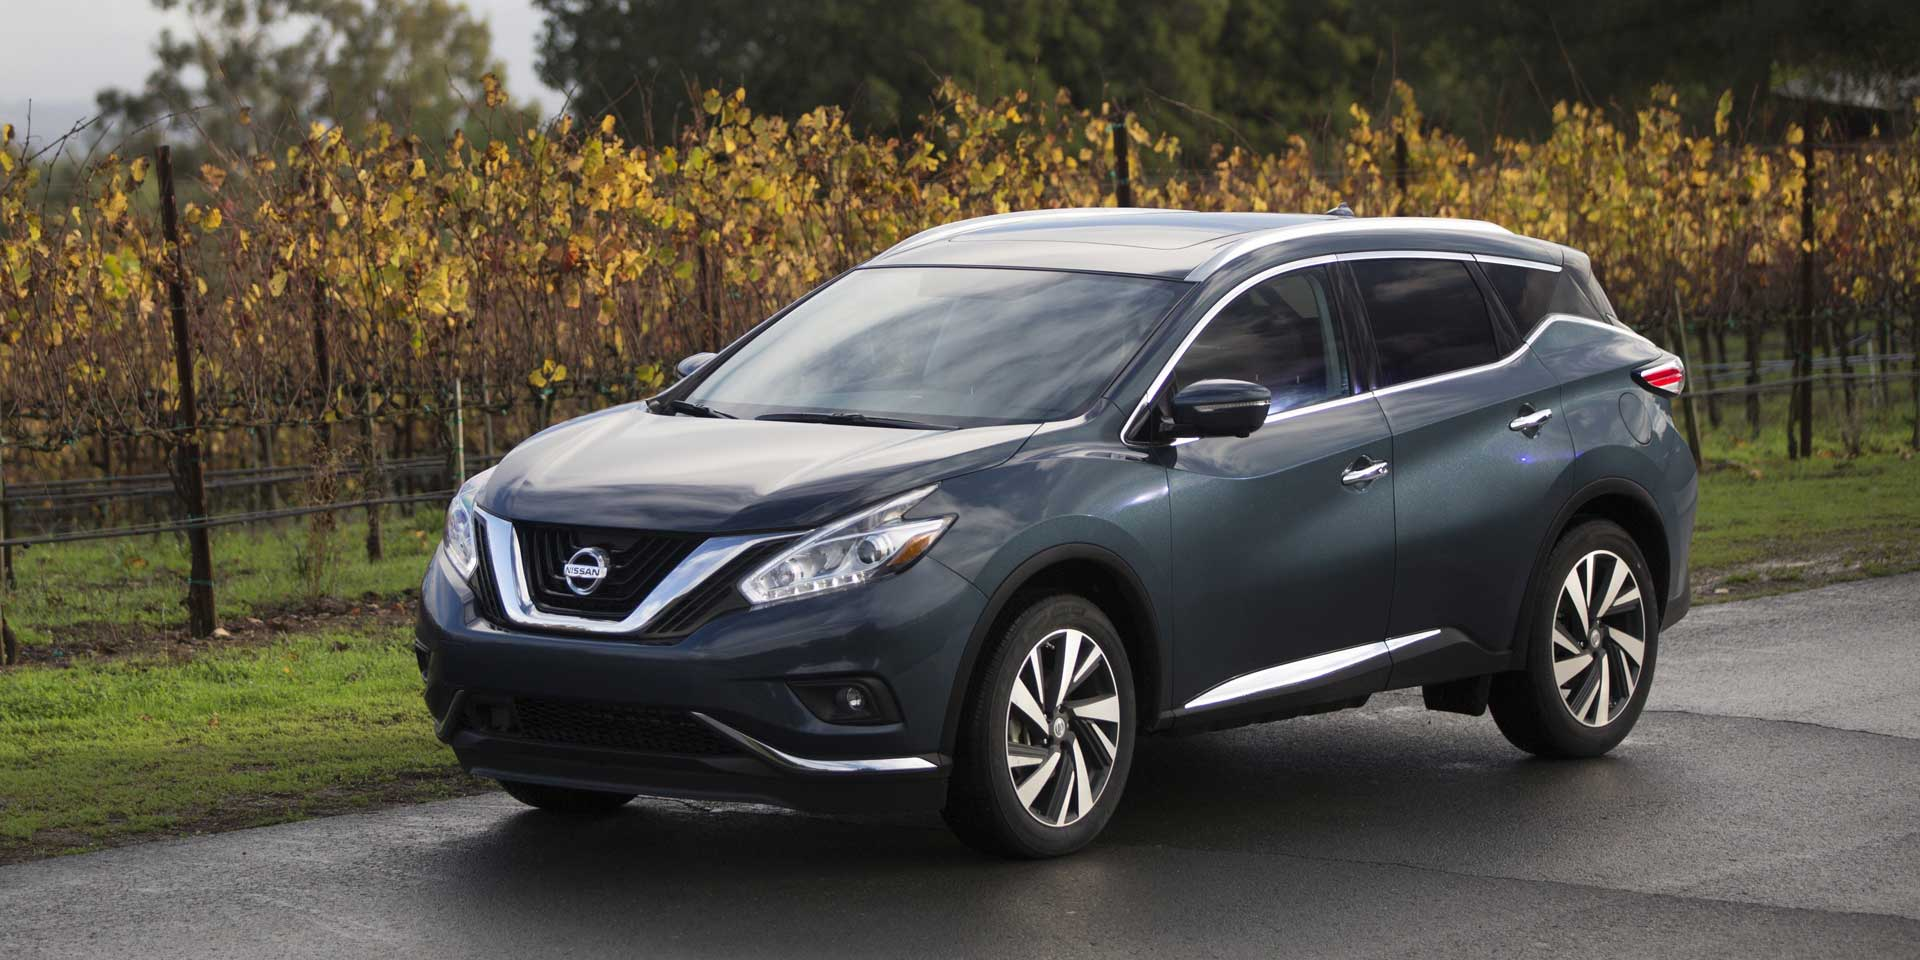 2017 nissan murano remote start. Black Bedroom Furniture Sets. Home Design Ideas